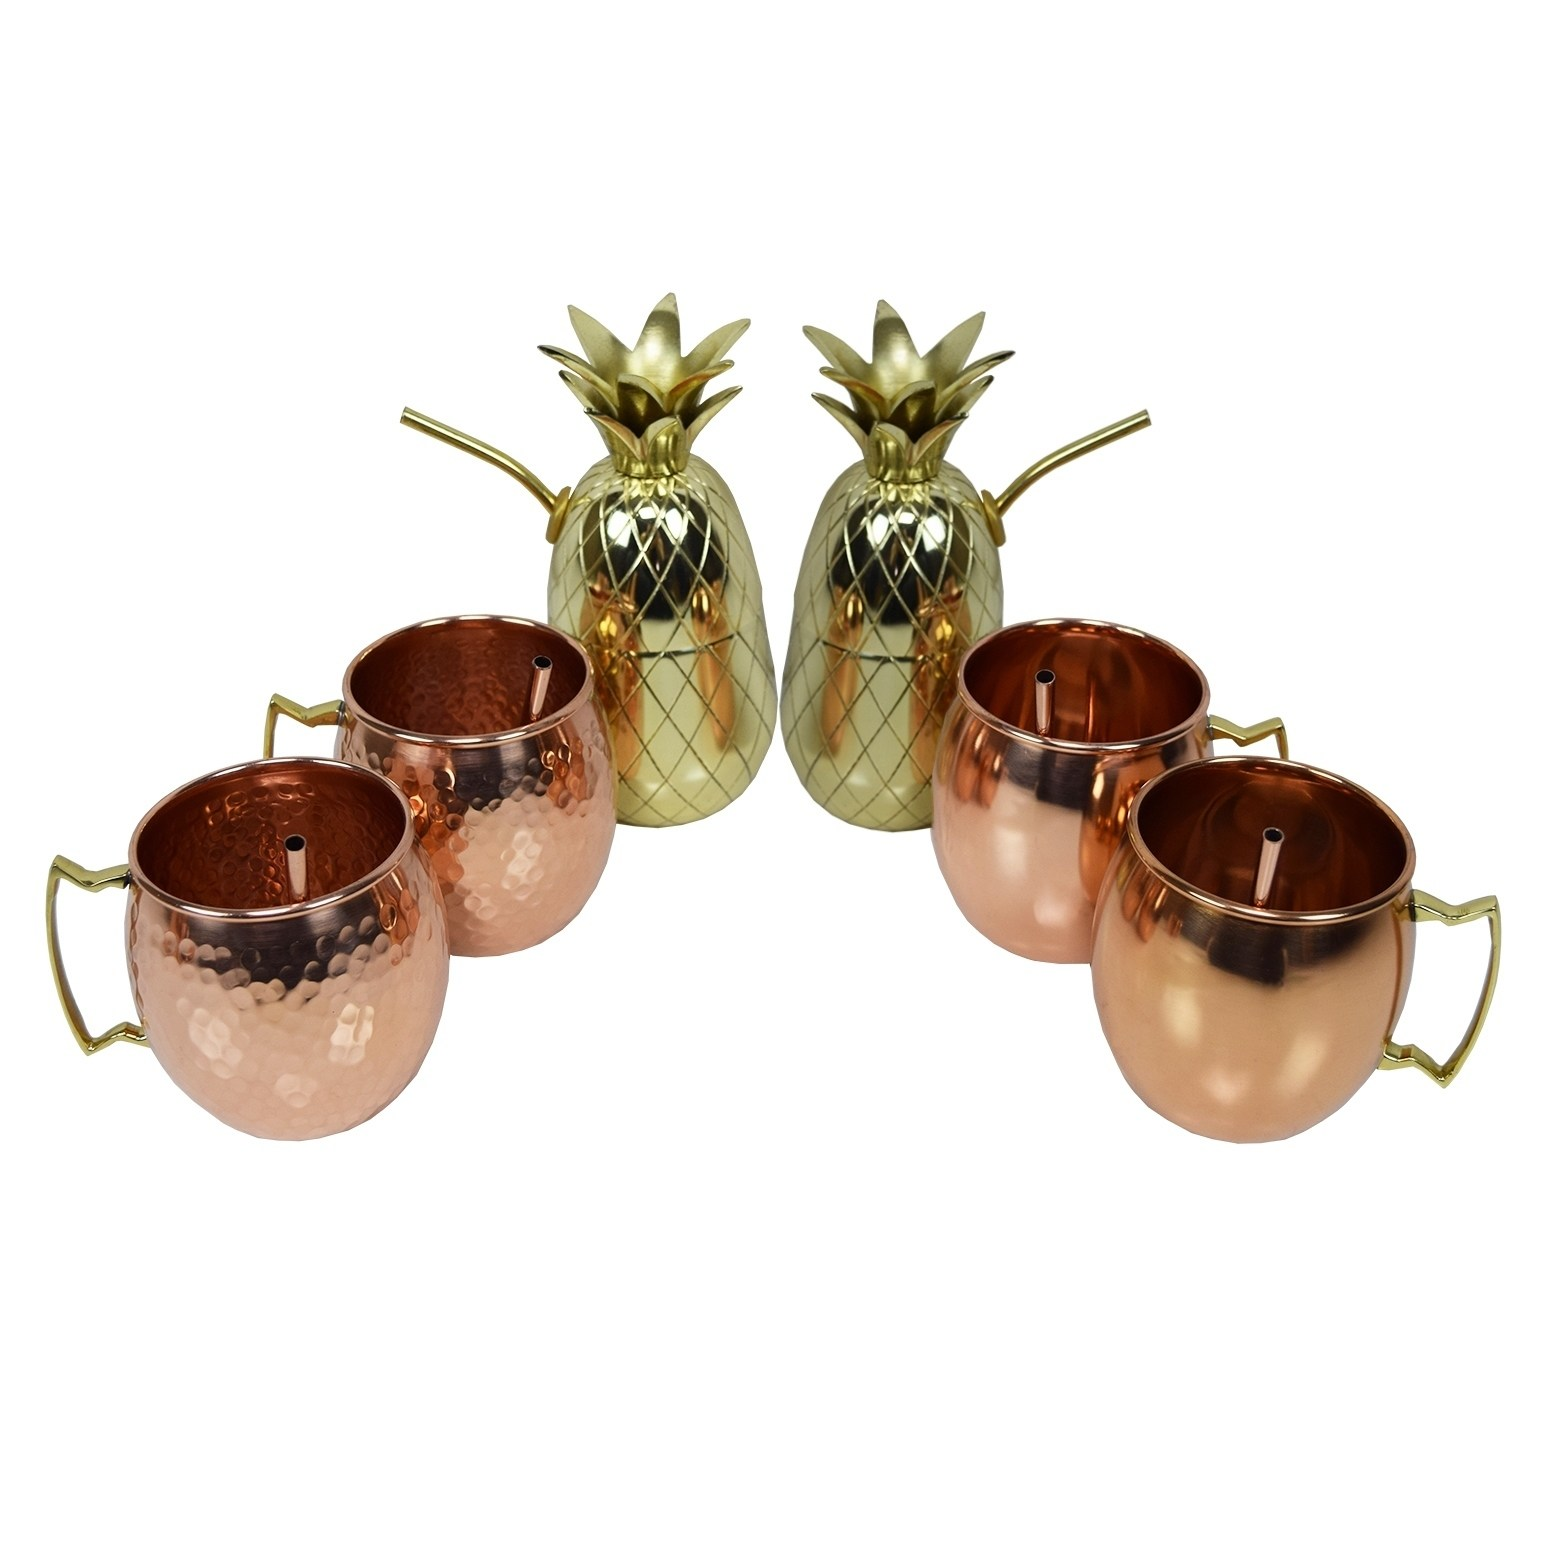 Oakland Living Six Piece Party Set of Moscow Mule Mugs, Pineapple Cups and Straws